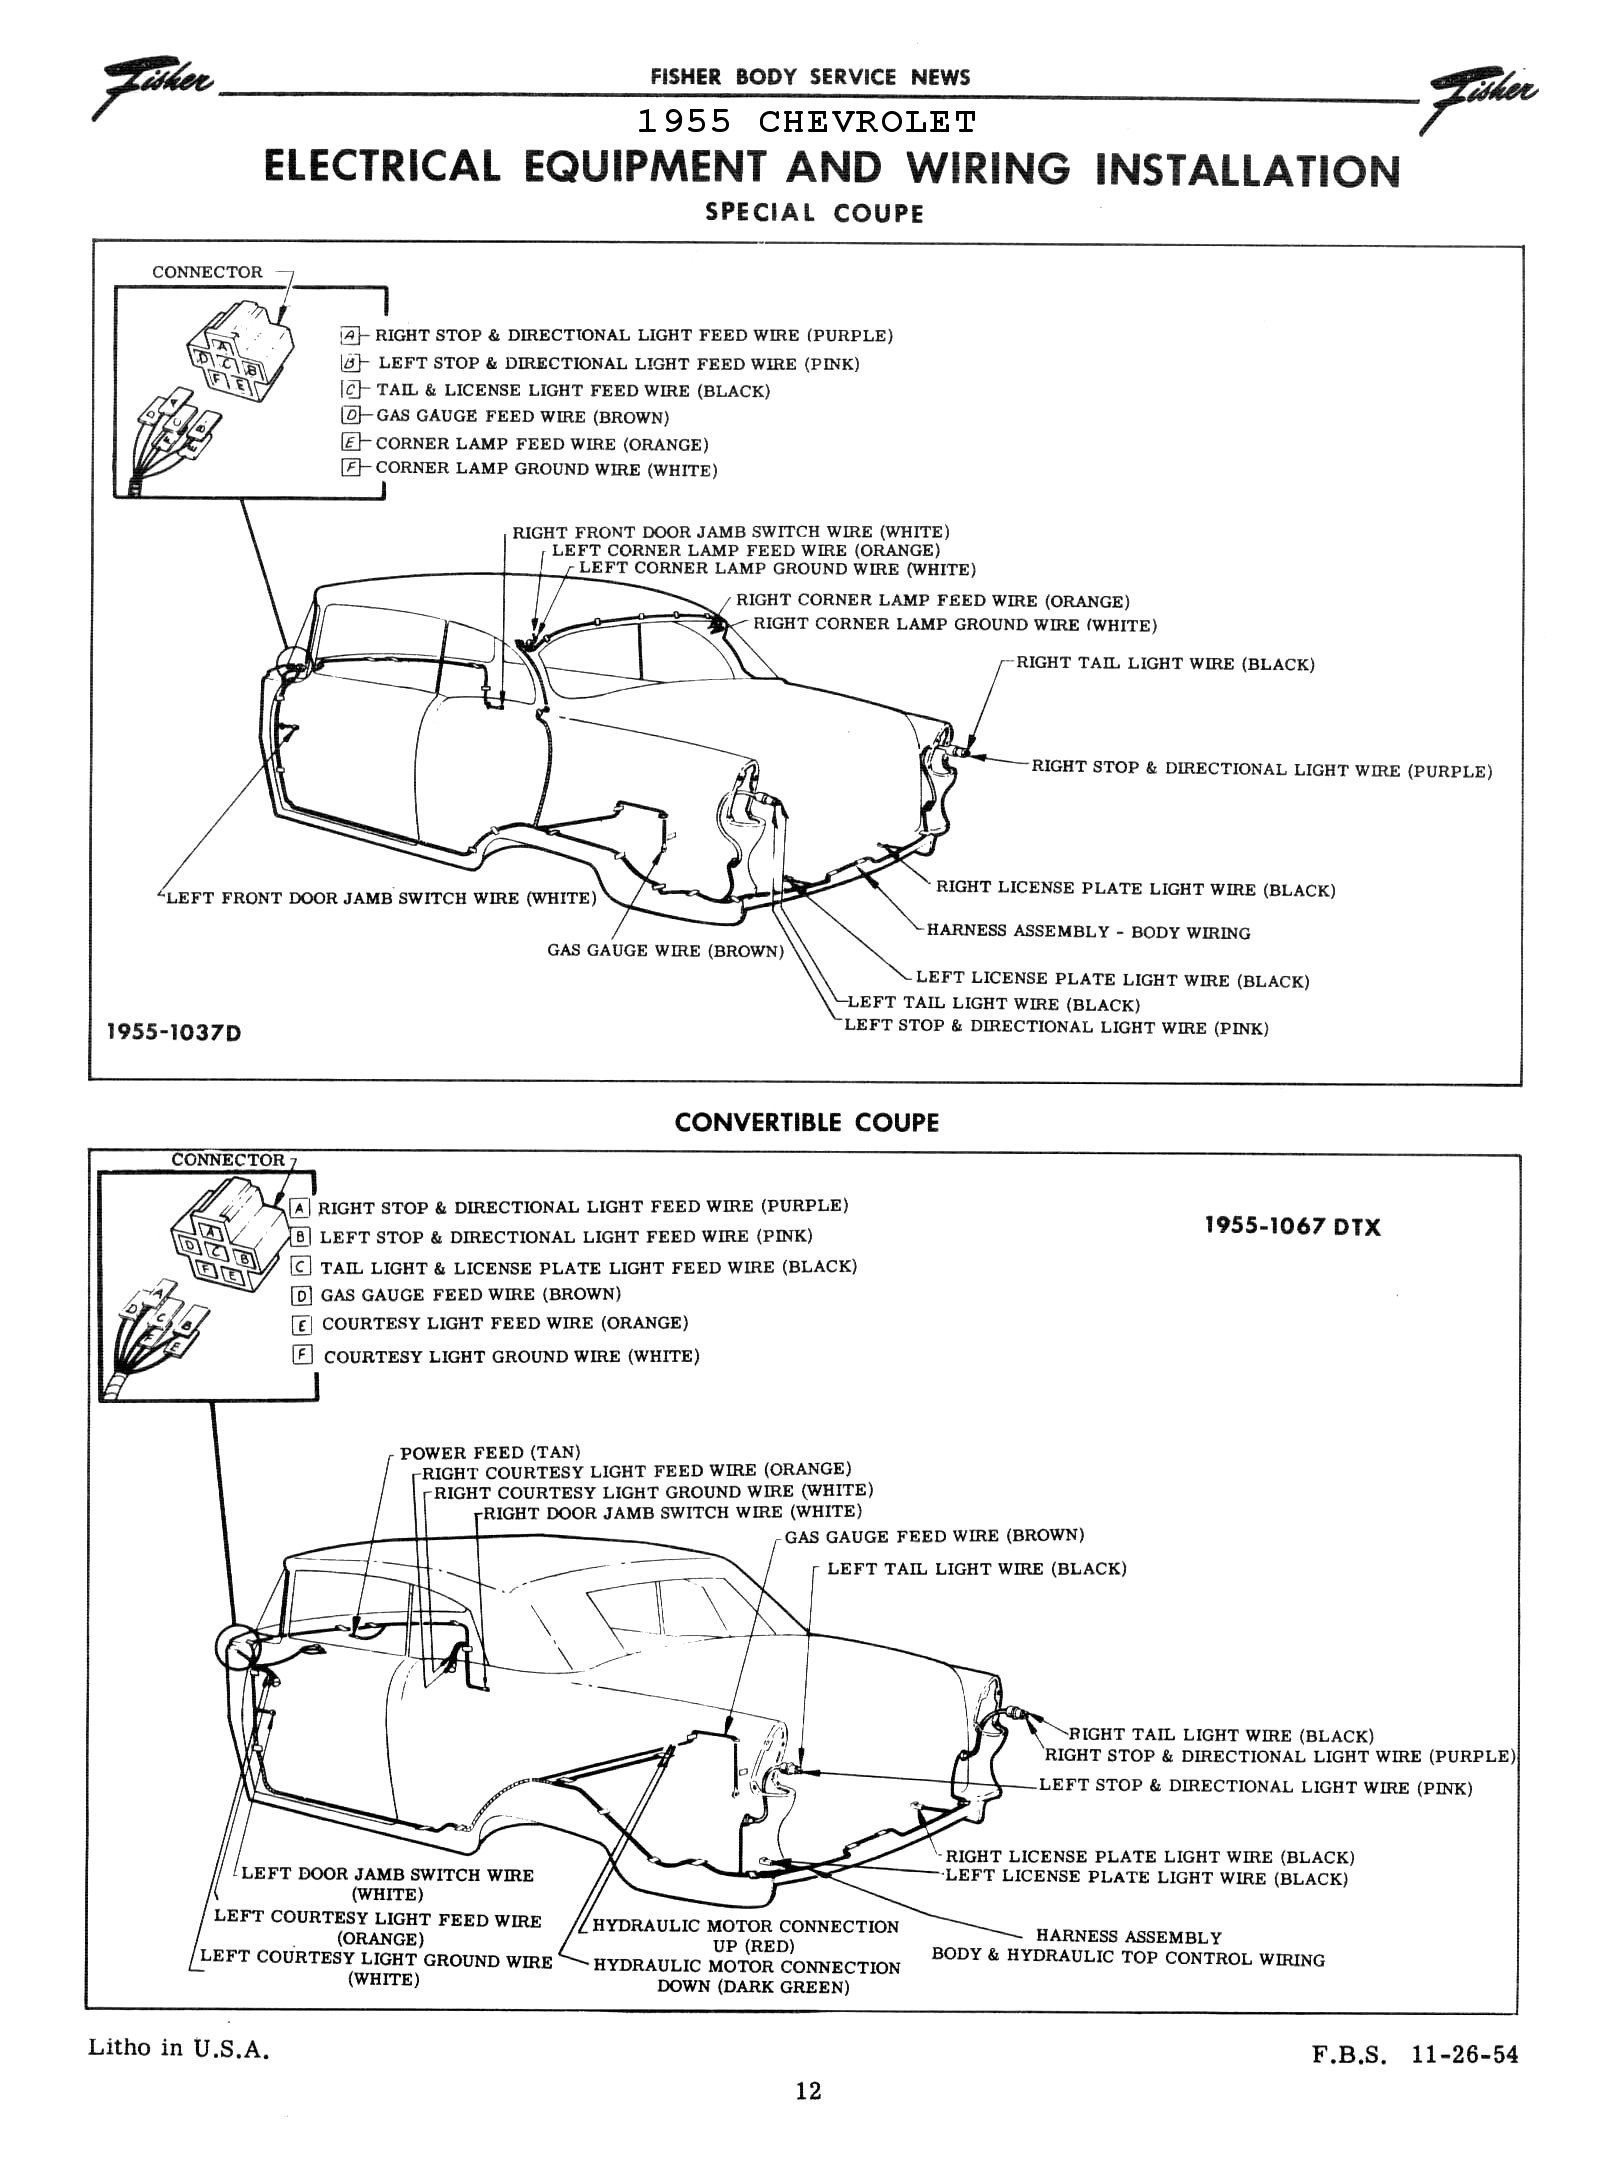 1956 gm light switch wiring diagram technical diagrams 1957 chevy bel air wiring harness